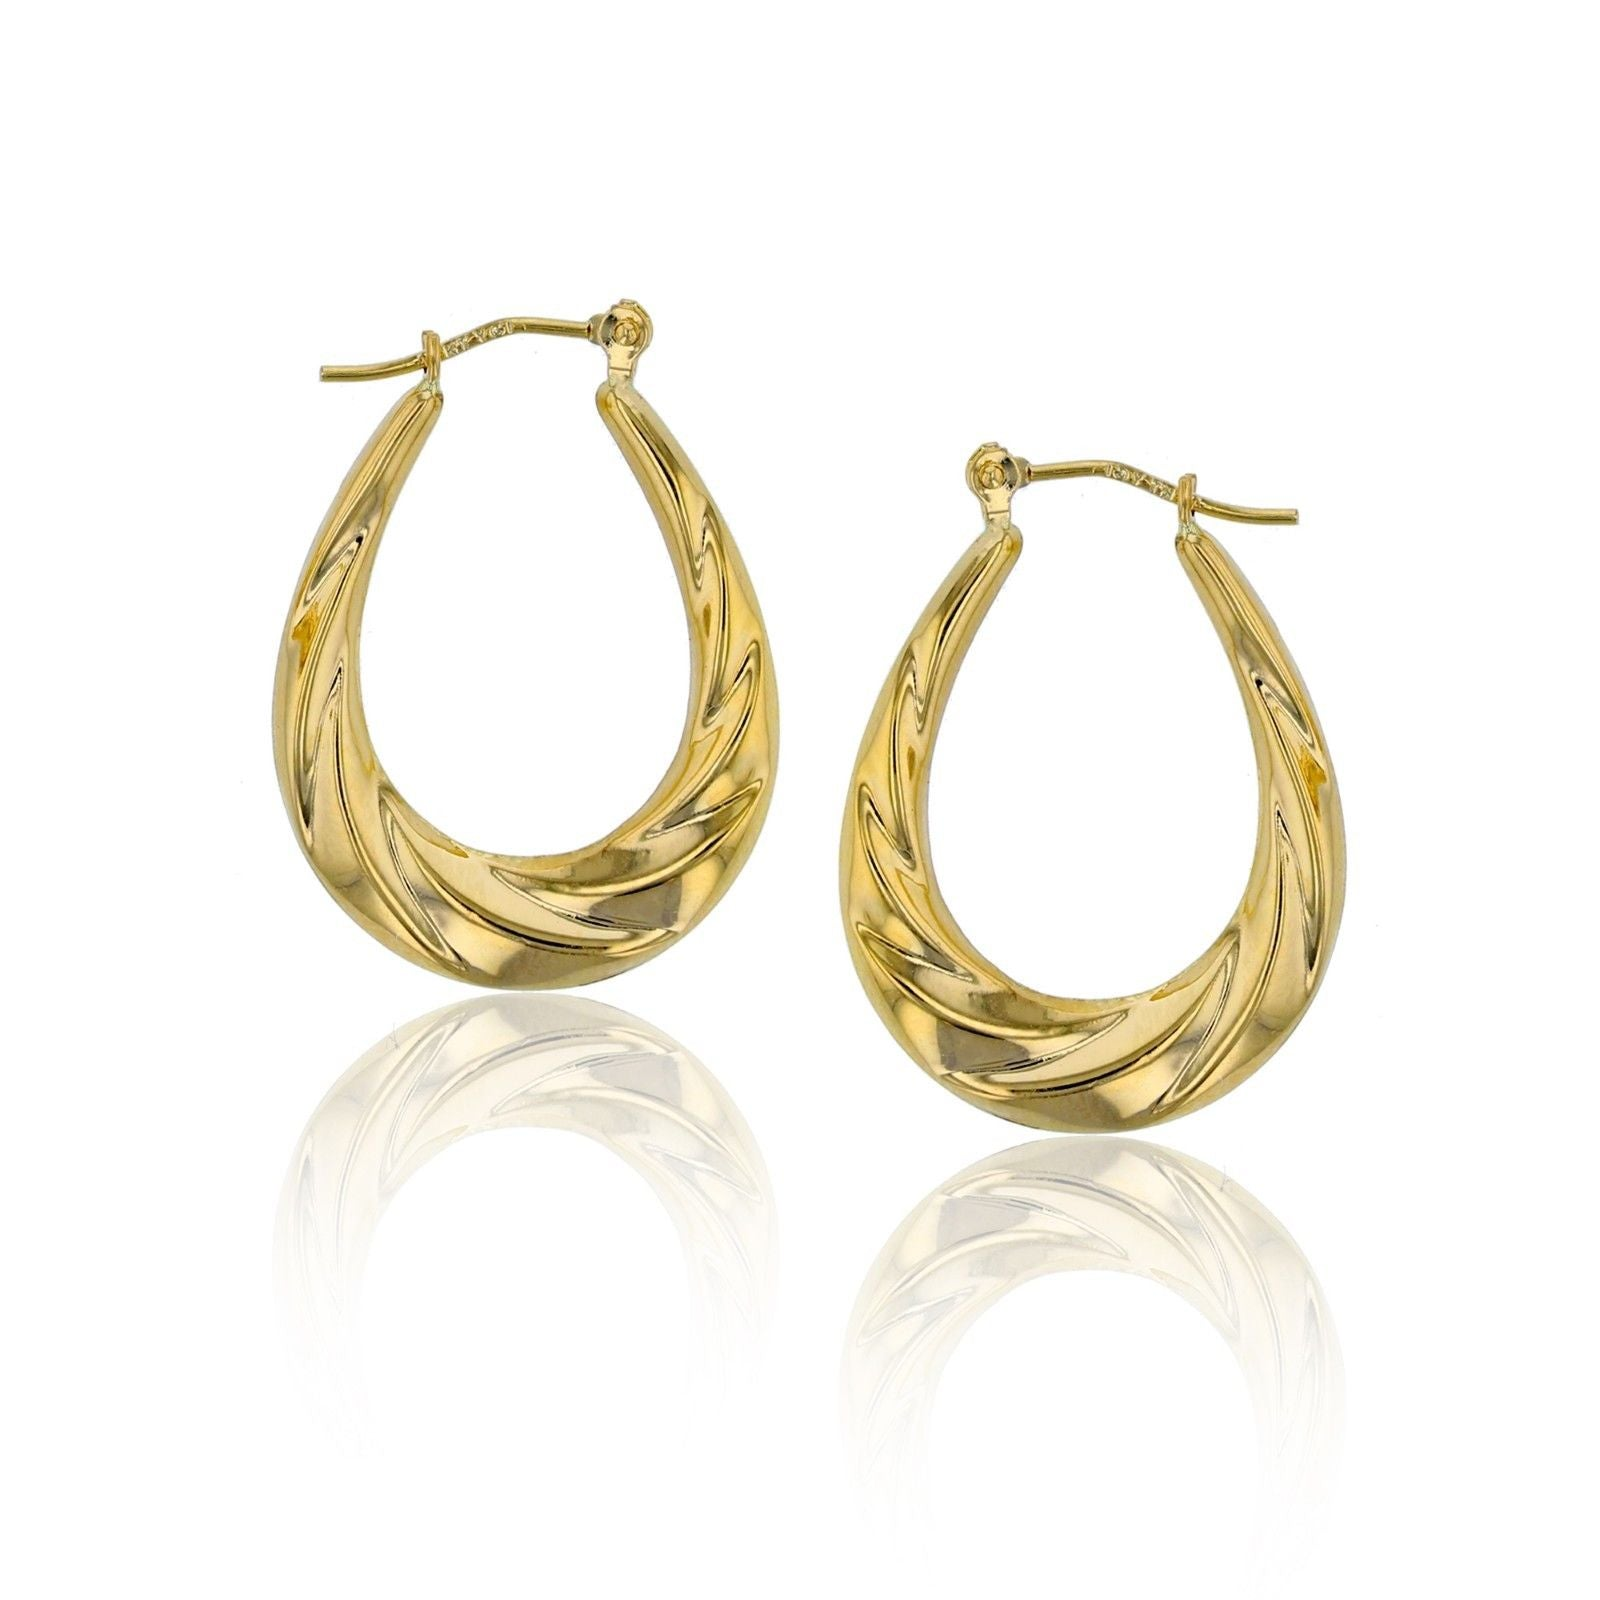 Real 14kt Yellow Gold Gold Polished Twisted Oval Hoop Earrings